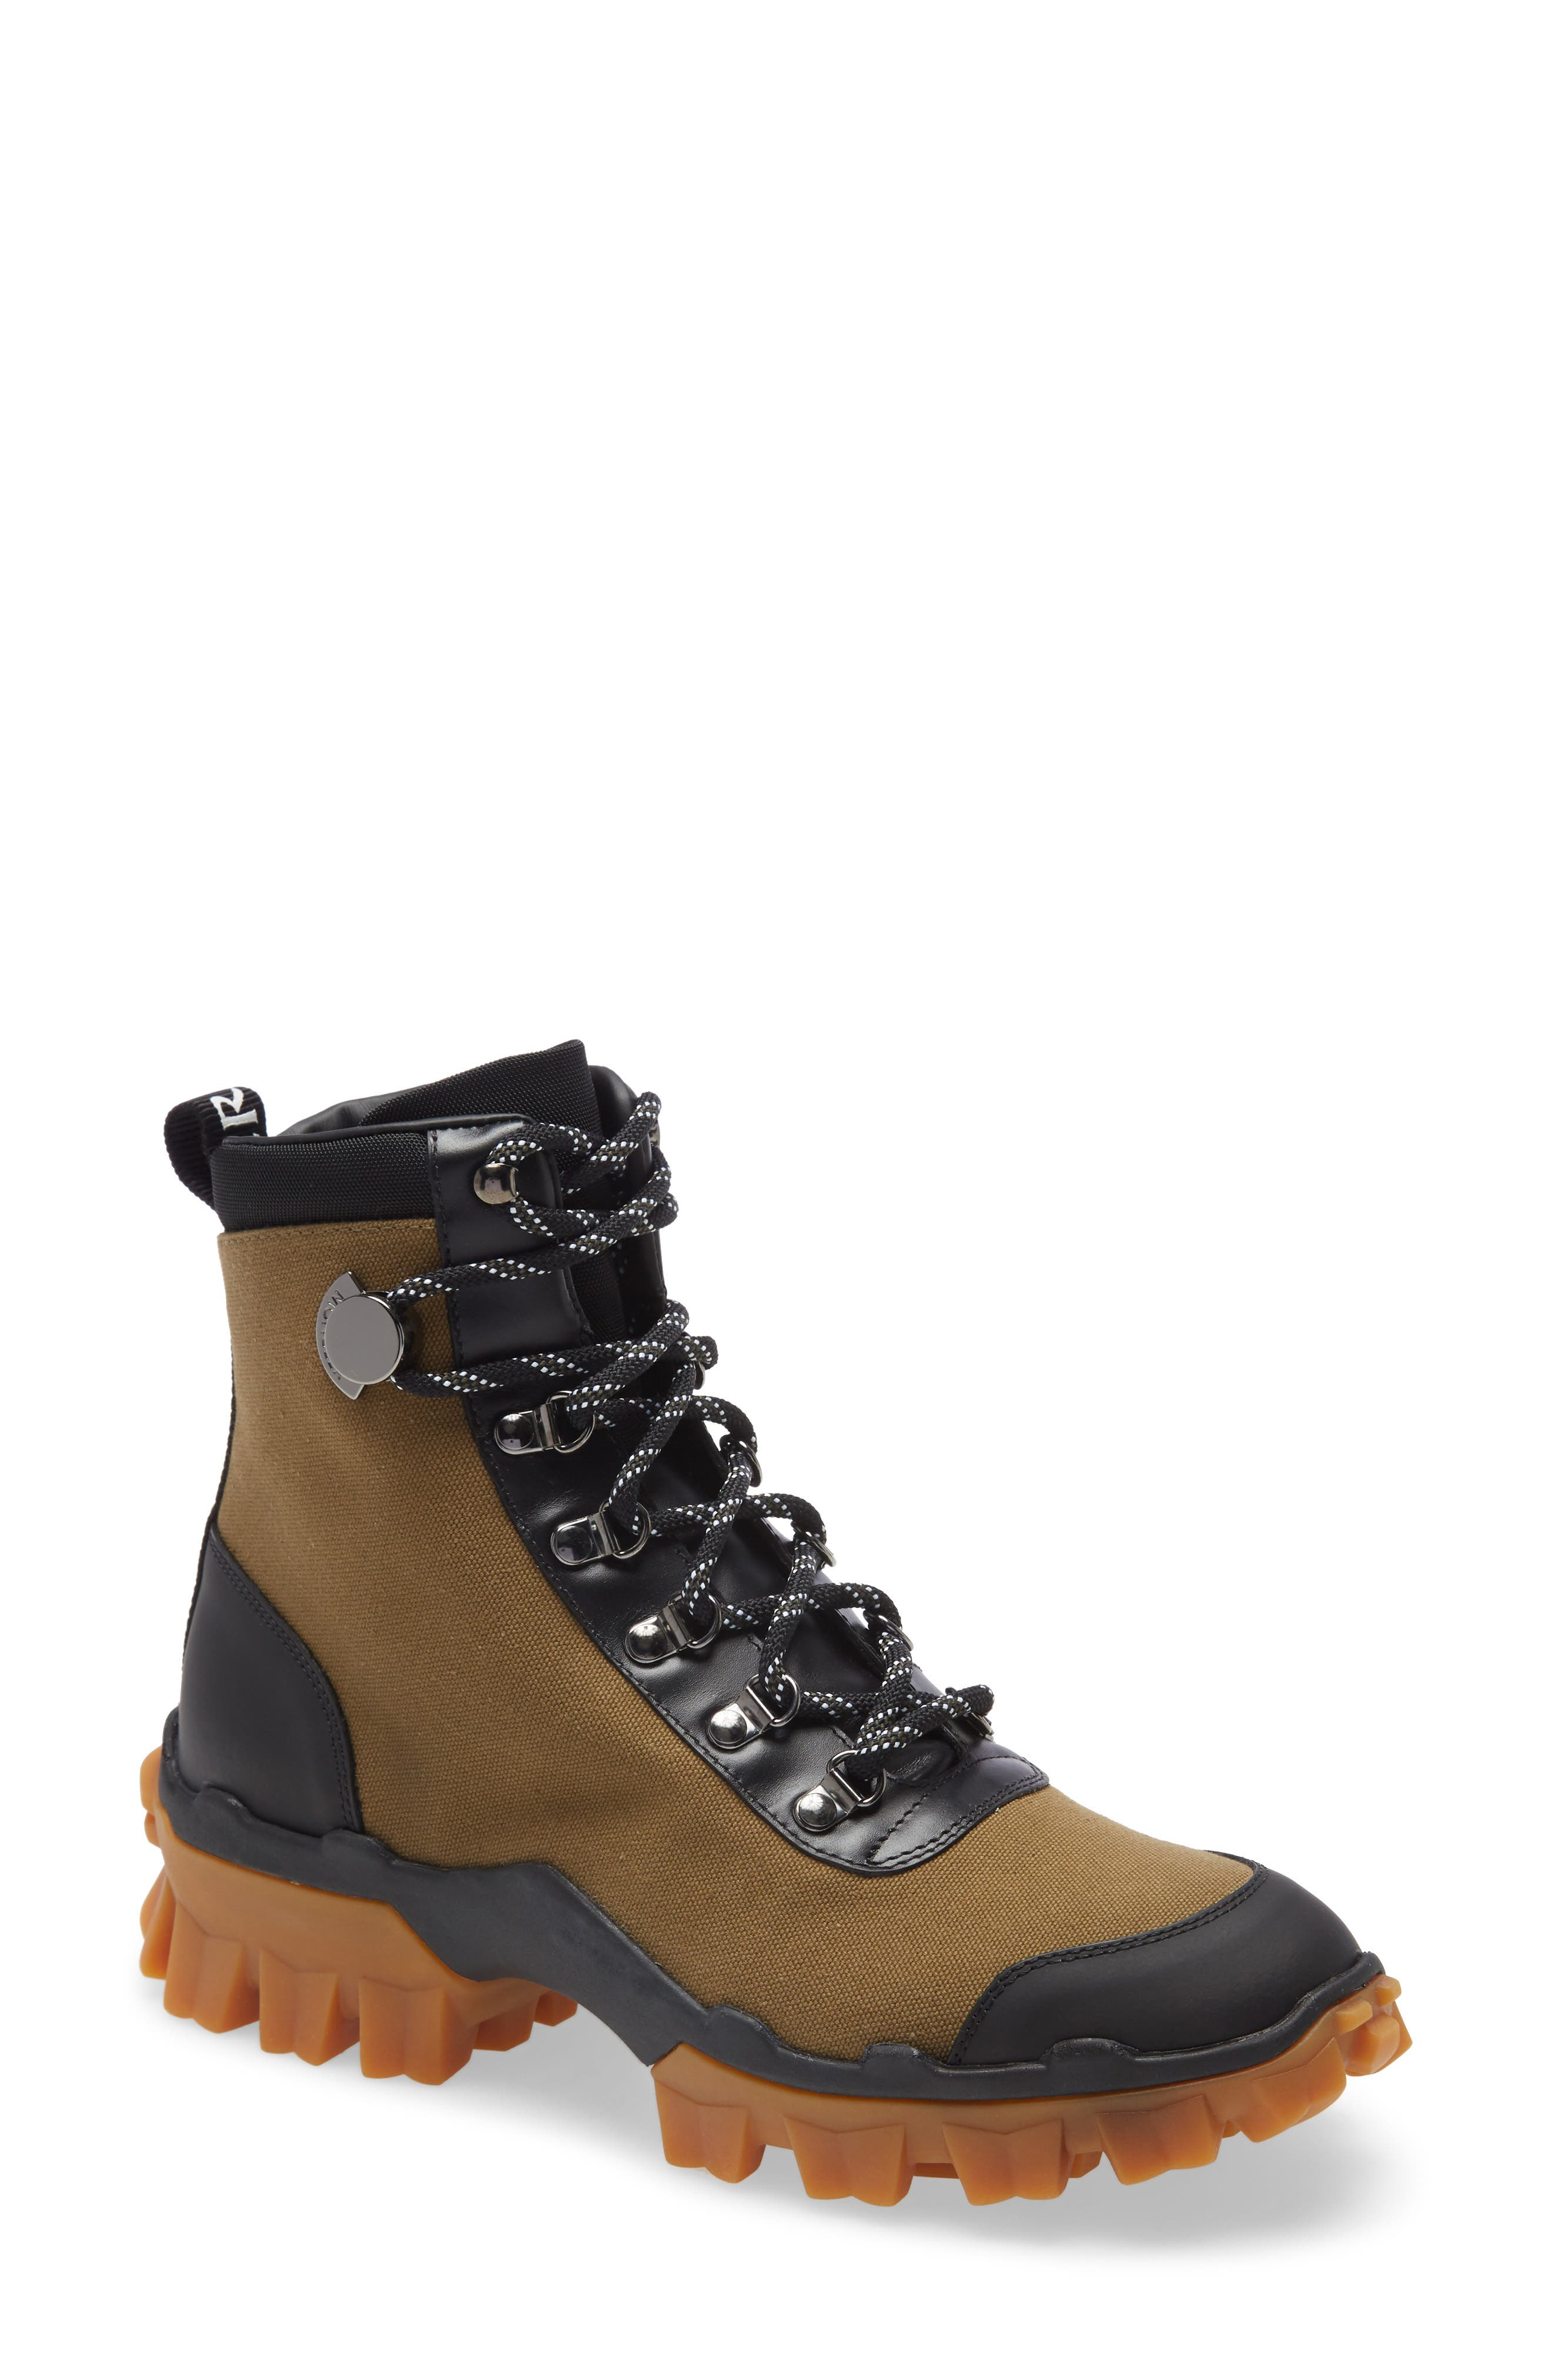 A mountain-crushing sole and logo-printed pull tab steer this boot in a fashion-forward direction while metal eyelets and sturdy laces keep the look classic. Style Name: Moncler Helis Hiking Boot (Women). Style Number: 5971662. Available in stores.